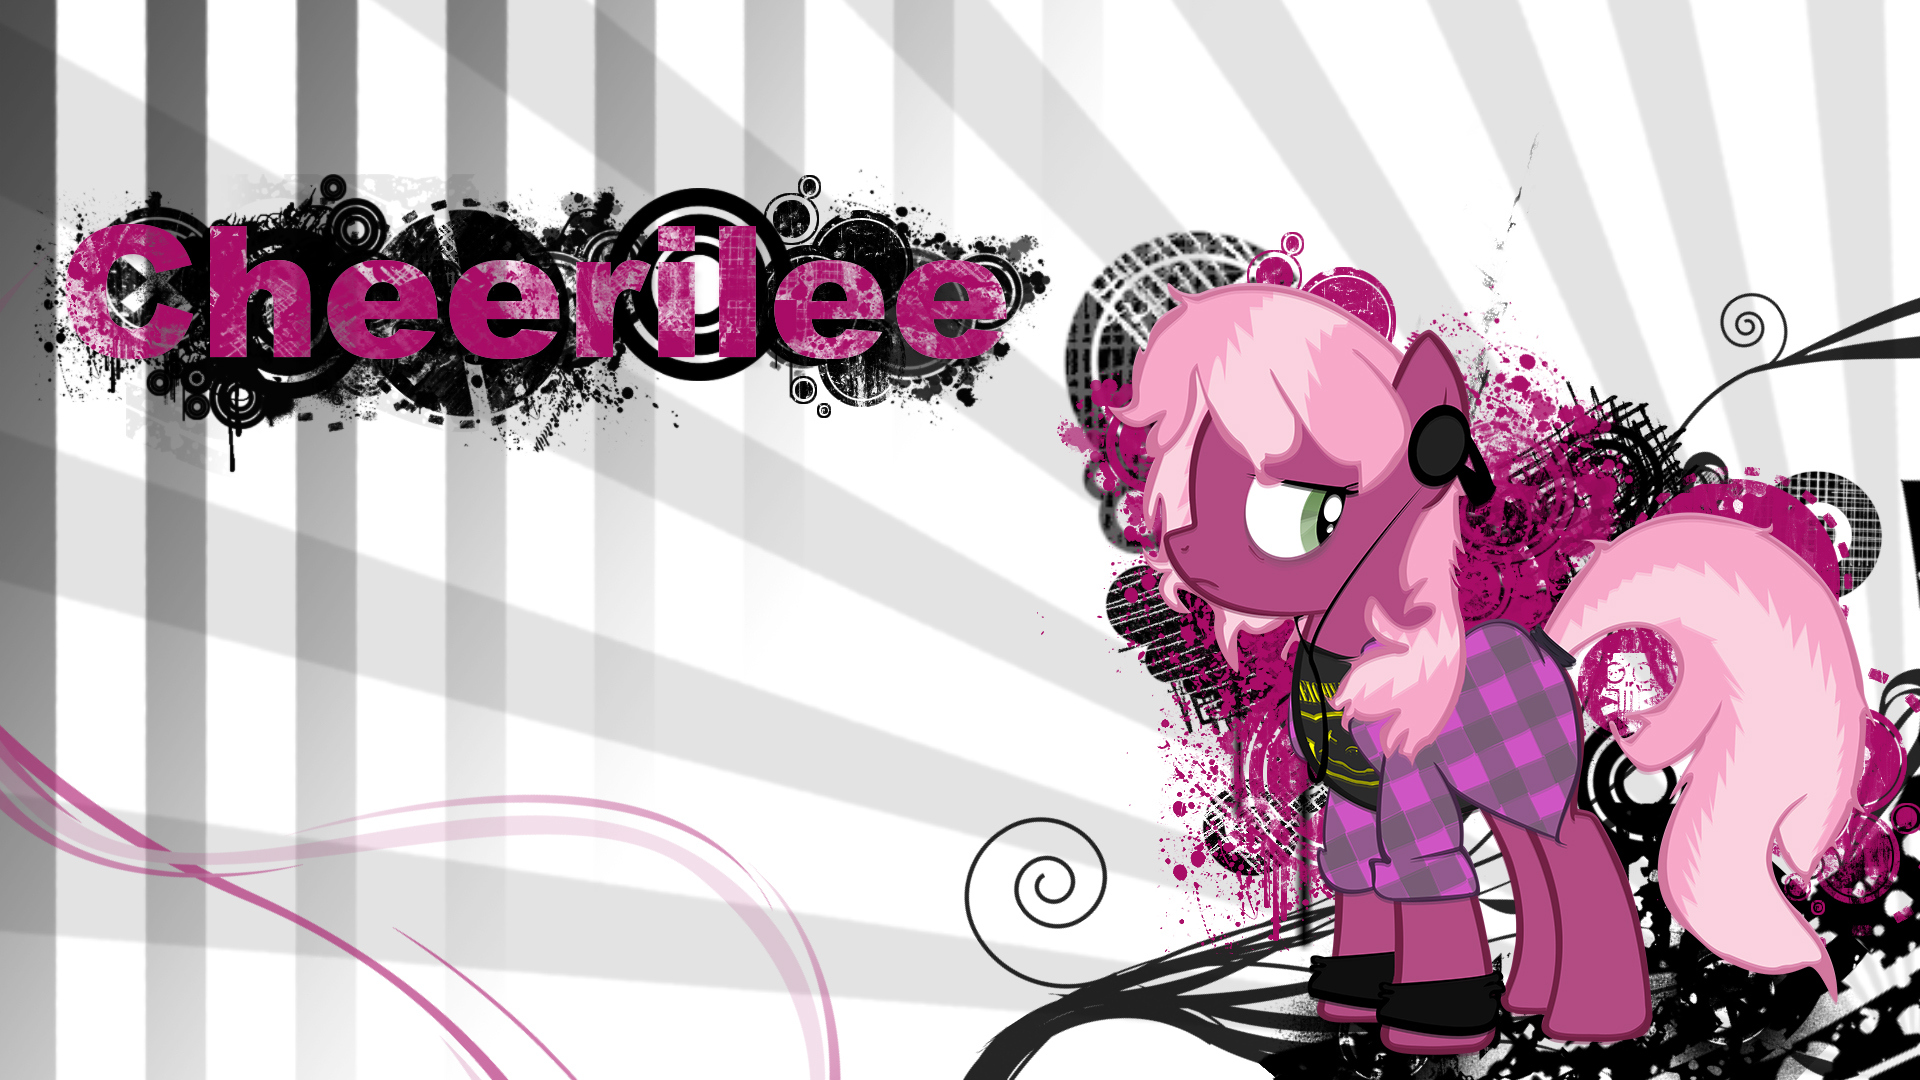 Cheerliee Grunge Wallpaper by TheSlickOctopus